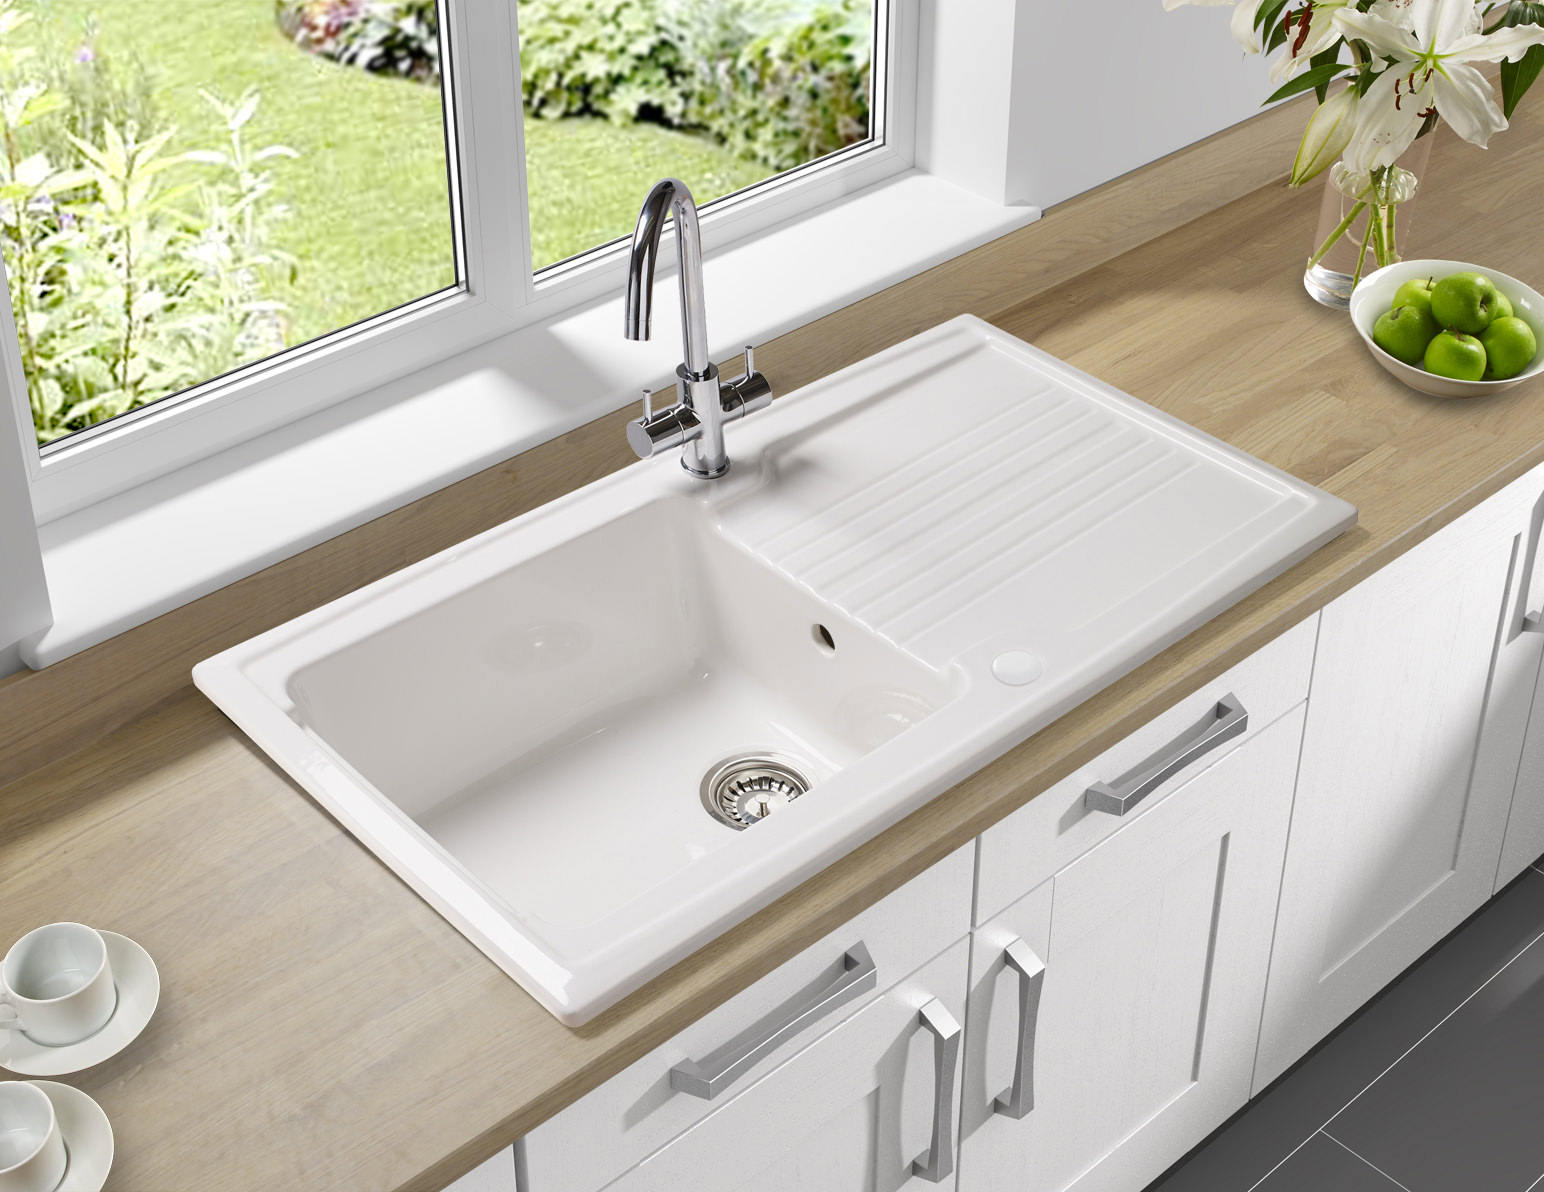 Ceramic Kitchen Sink Astracast Equinox 1 Bowl Ceramic Inset Kitchen Sink